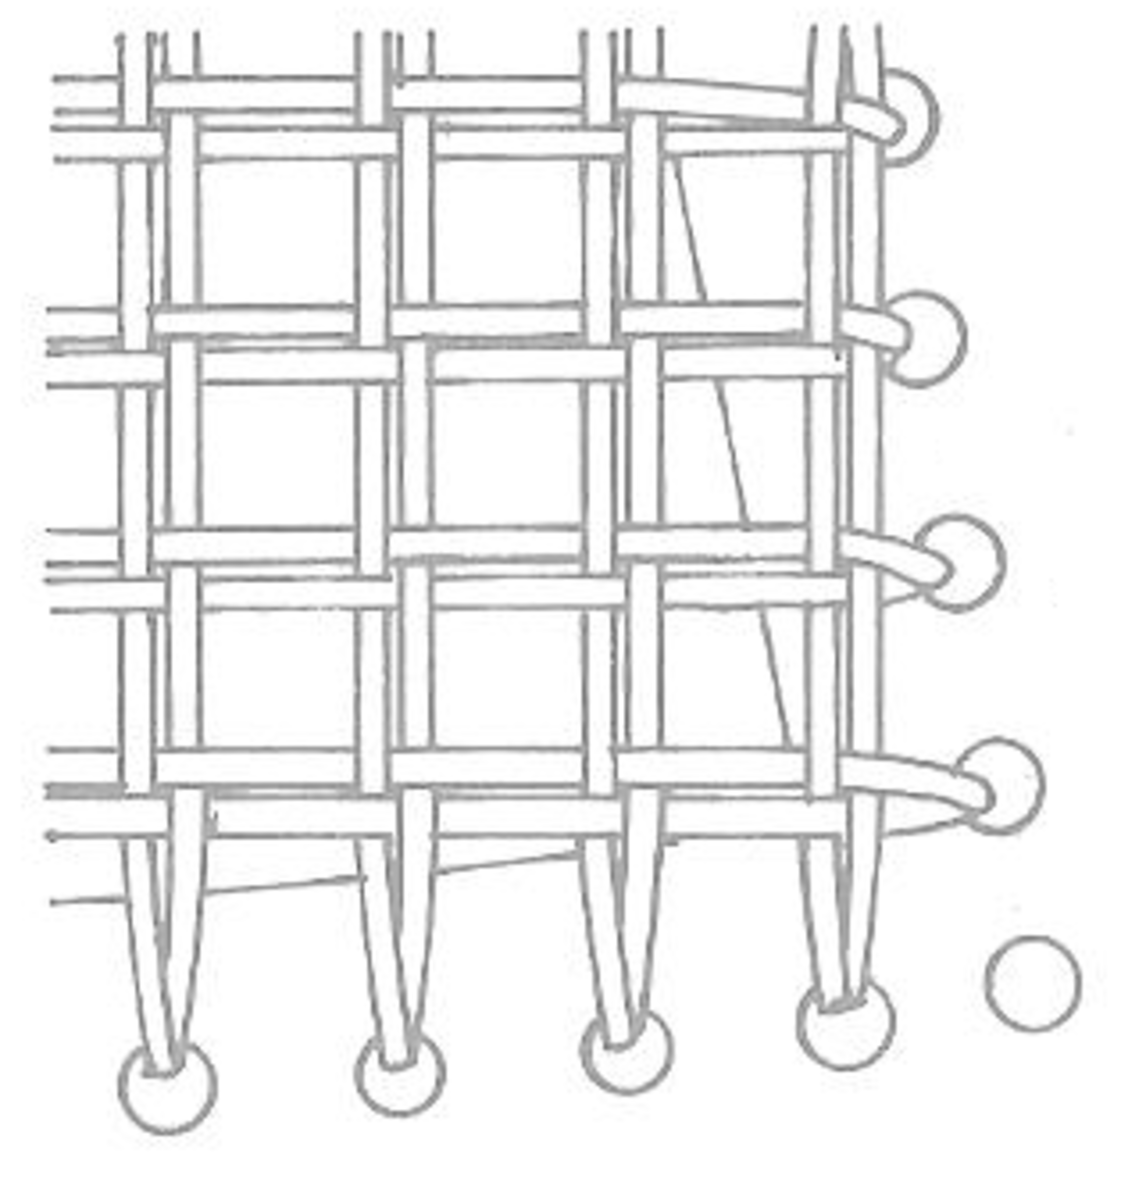 Figure 2: Third and Fourth Rows